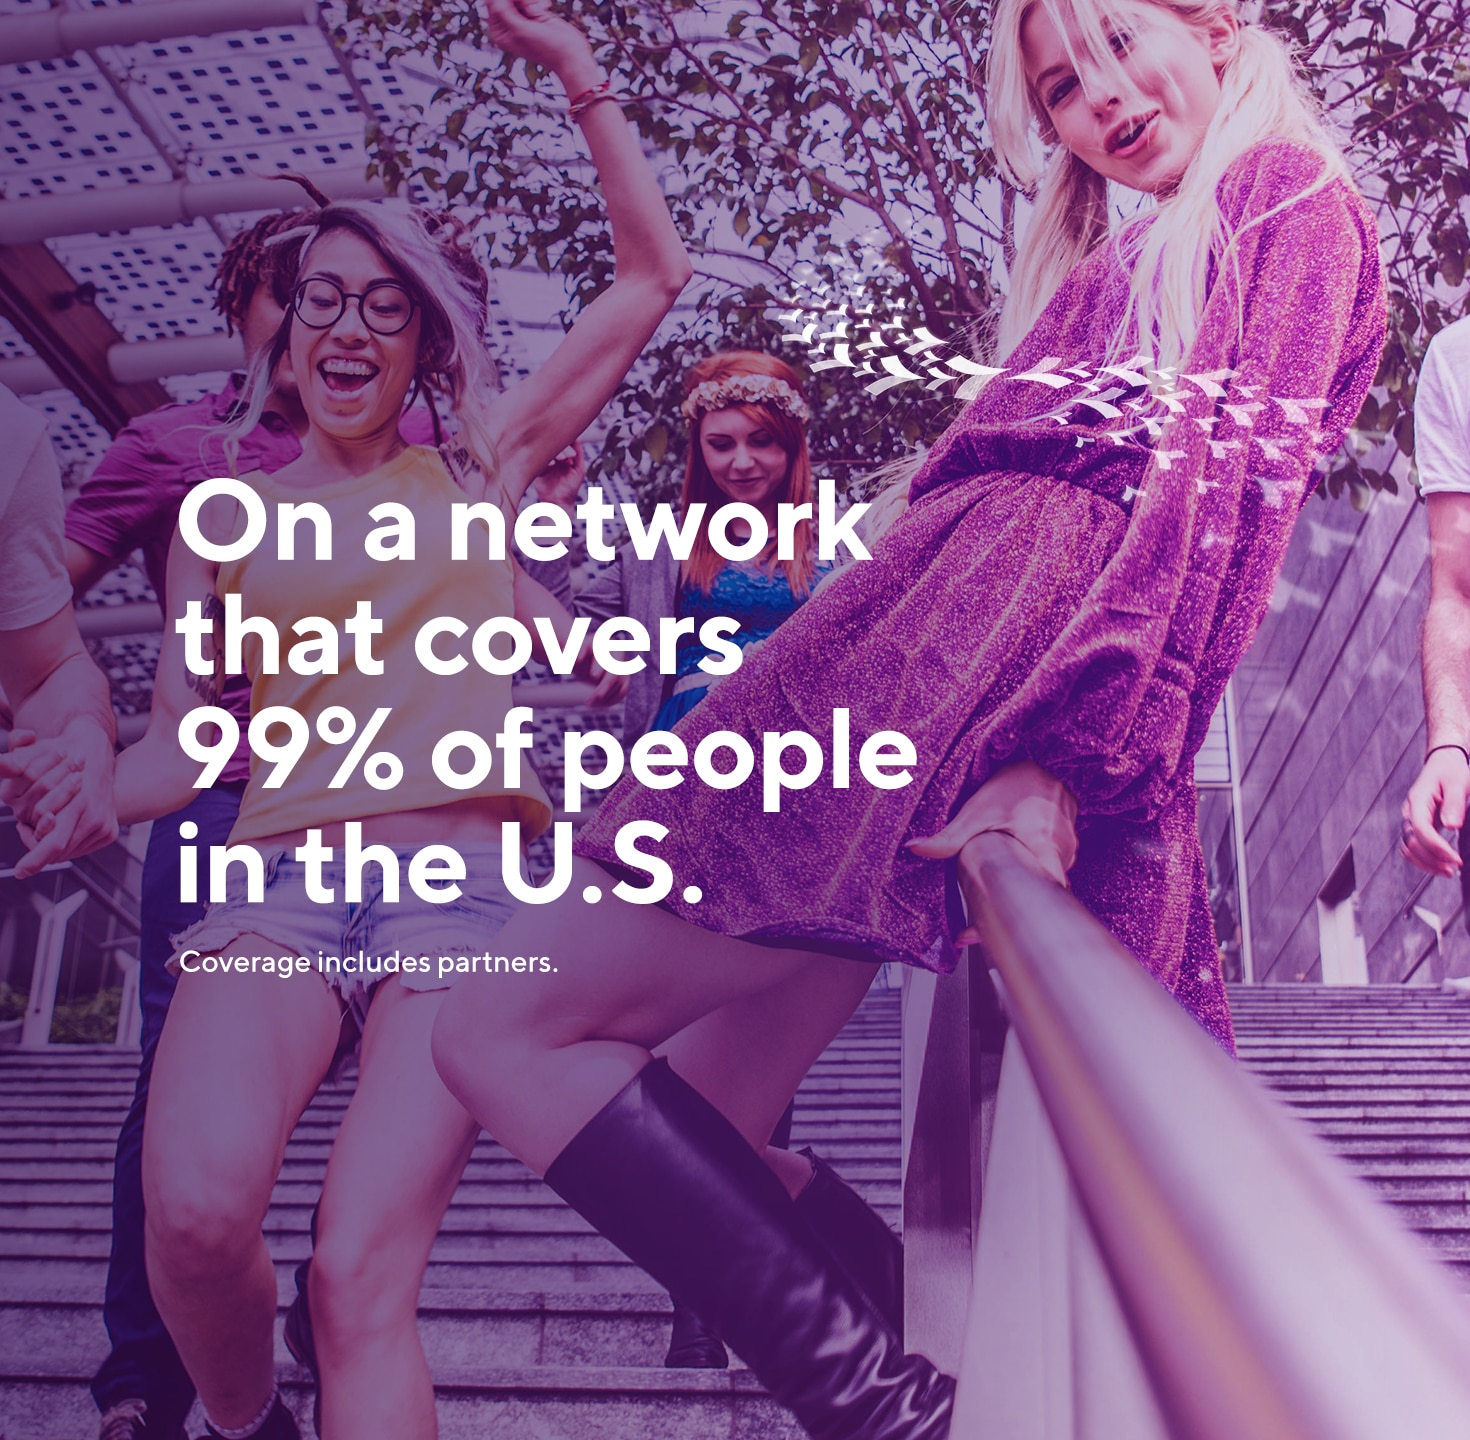 On a network that covers 99% of people in the U.S.